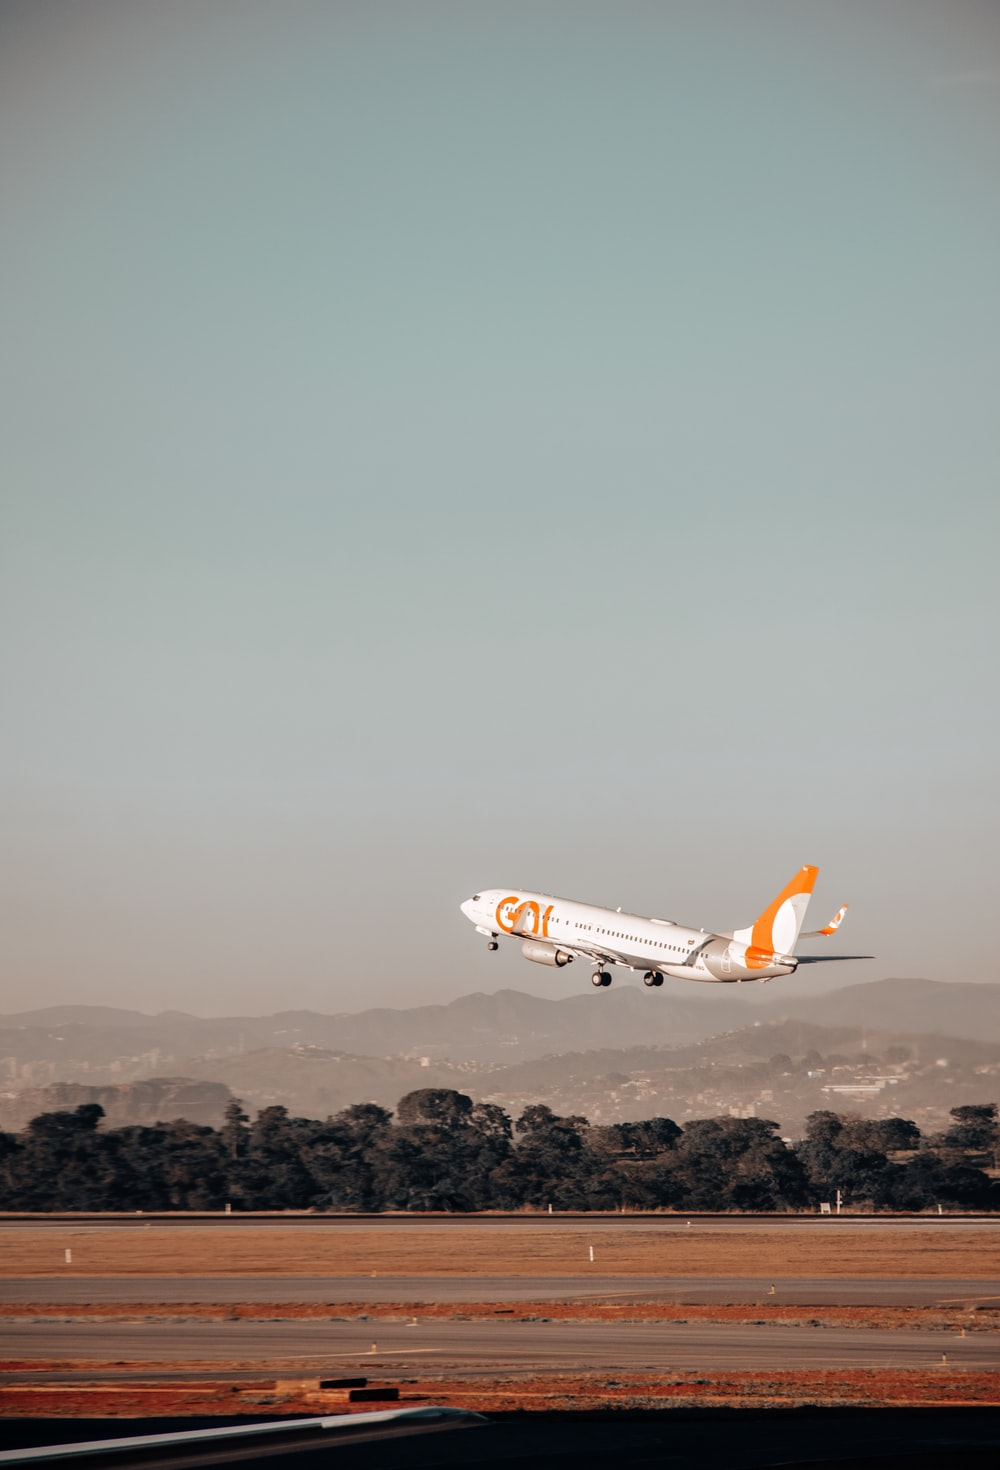 white and orange airplane in mid air during daytime